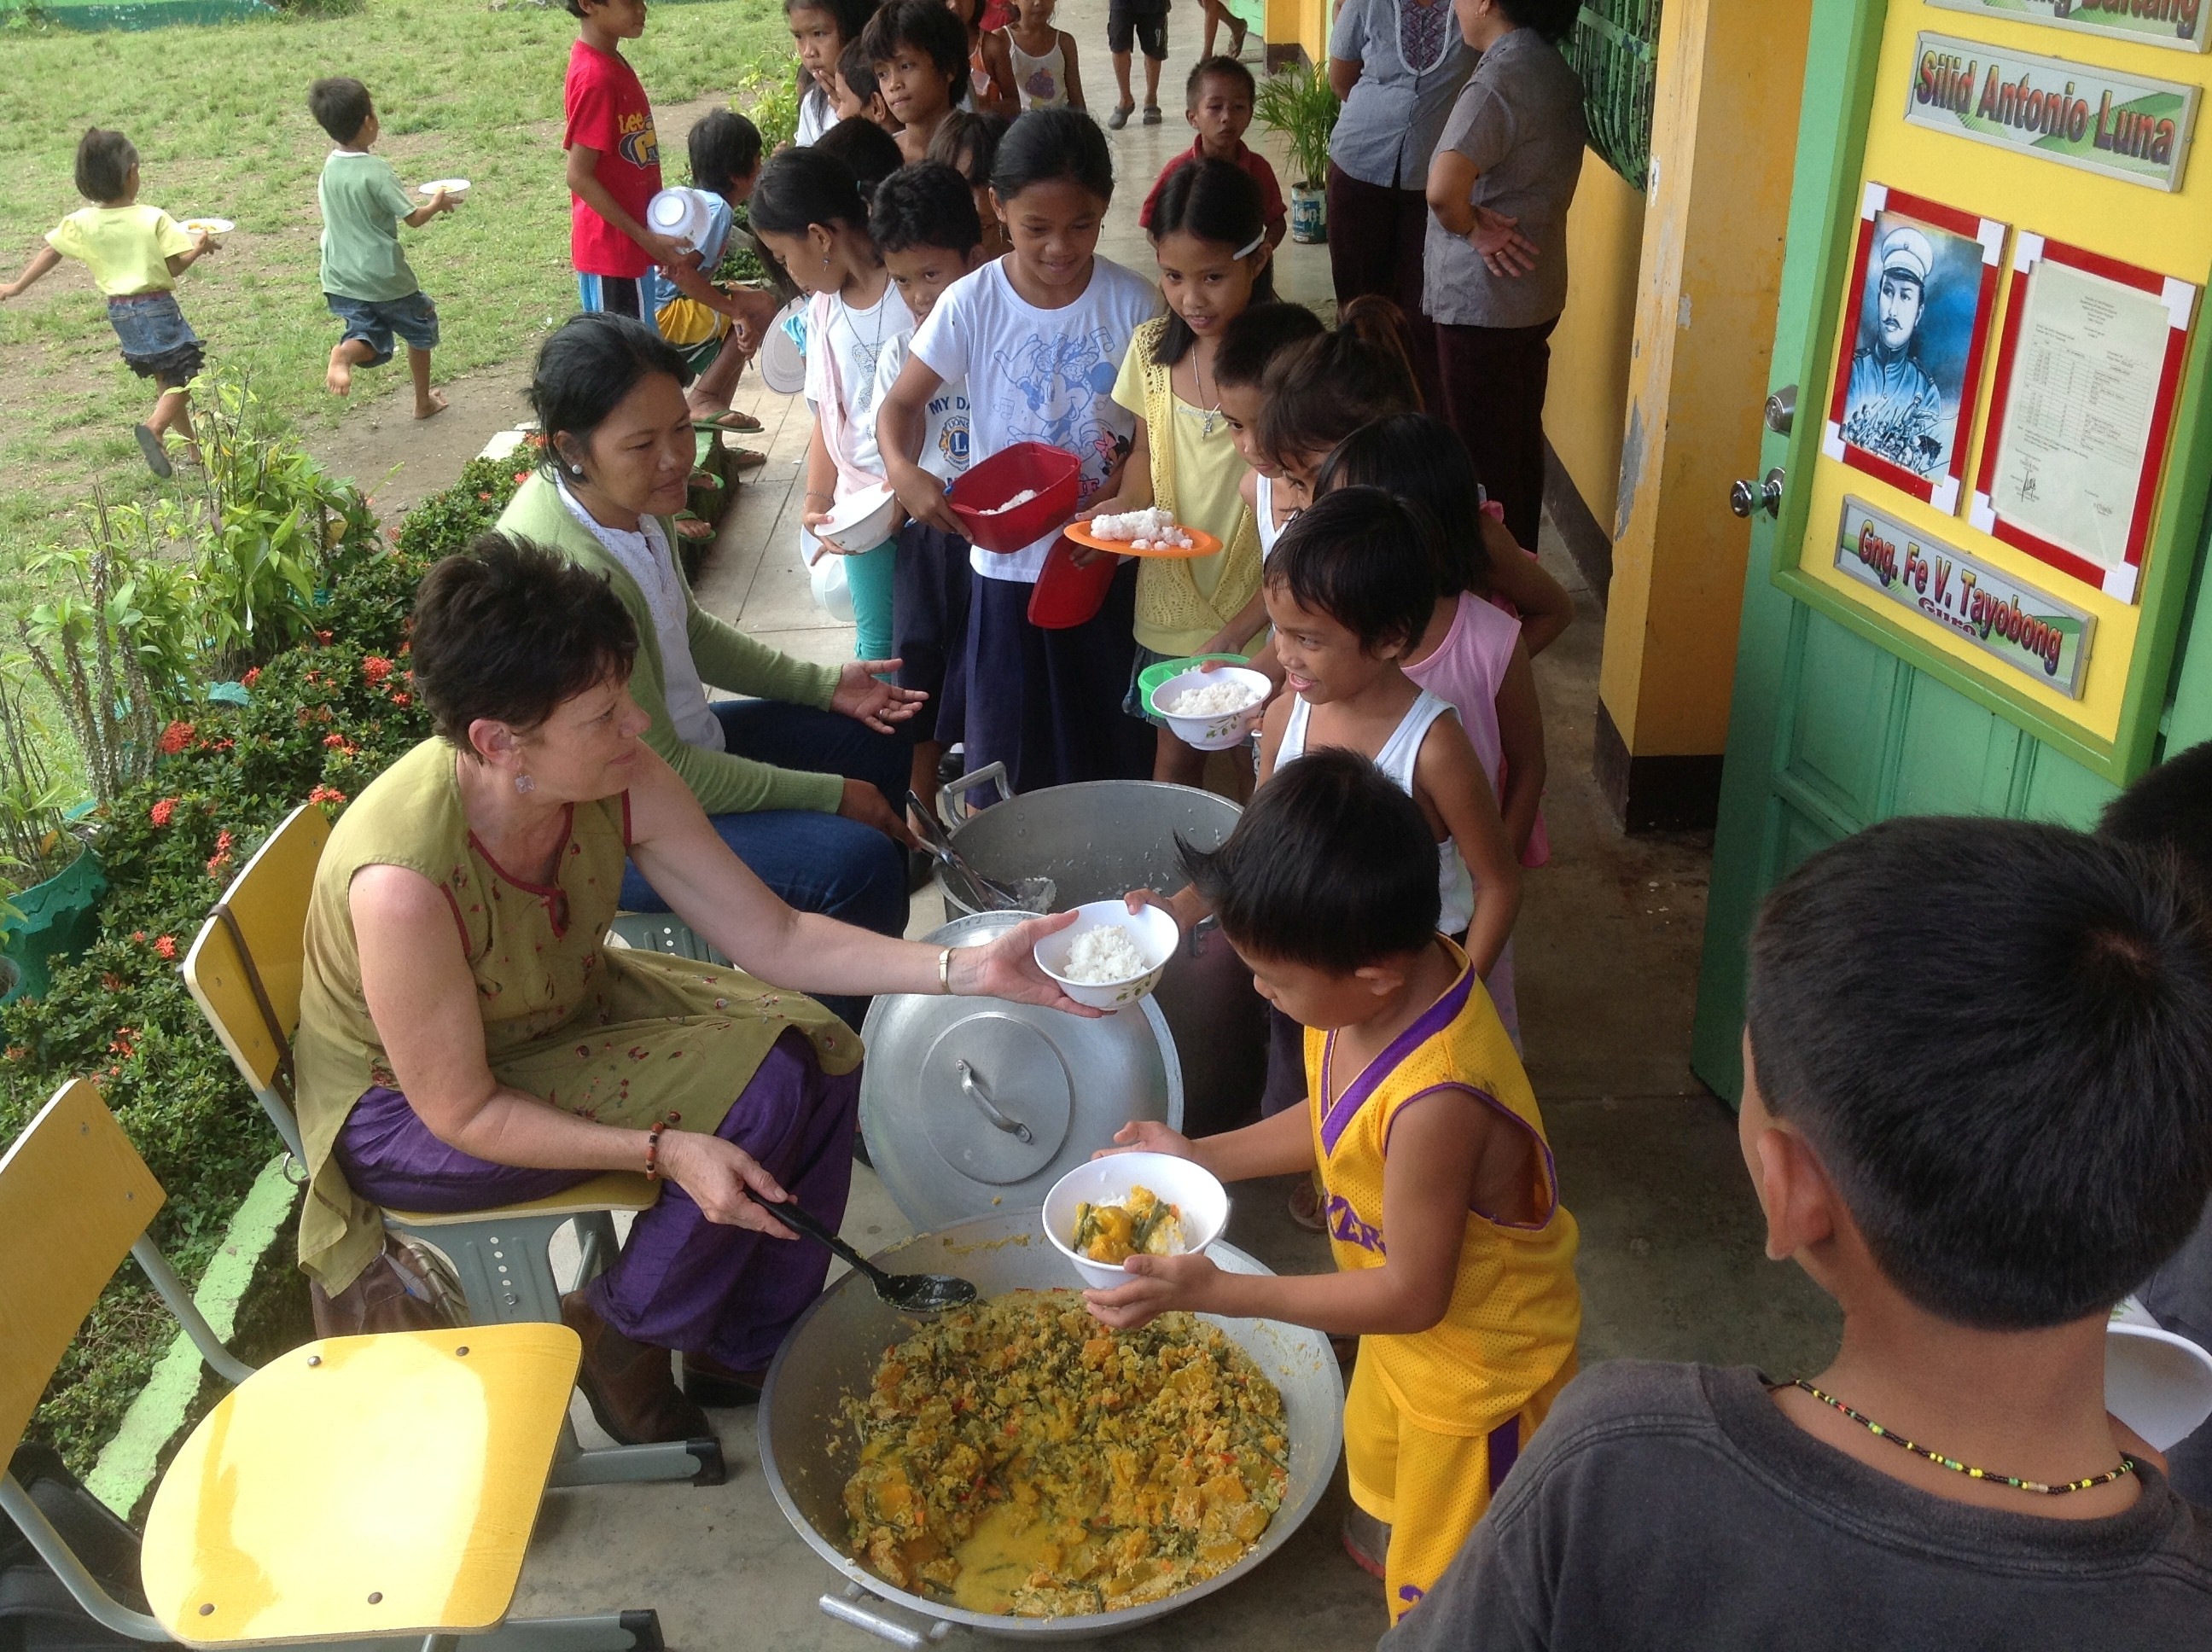 Sathya Sai Volunteers distributing food to children at School